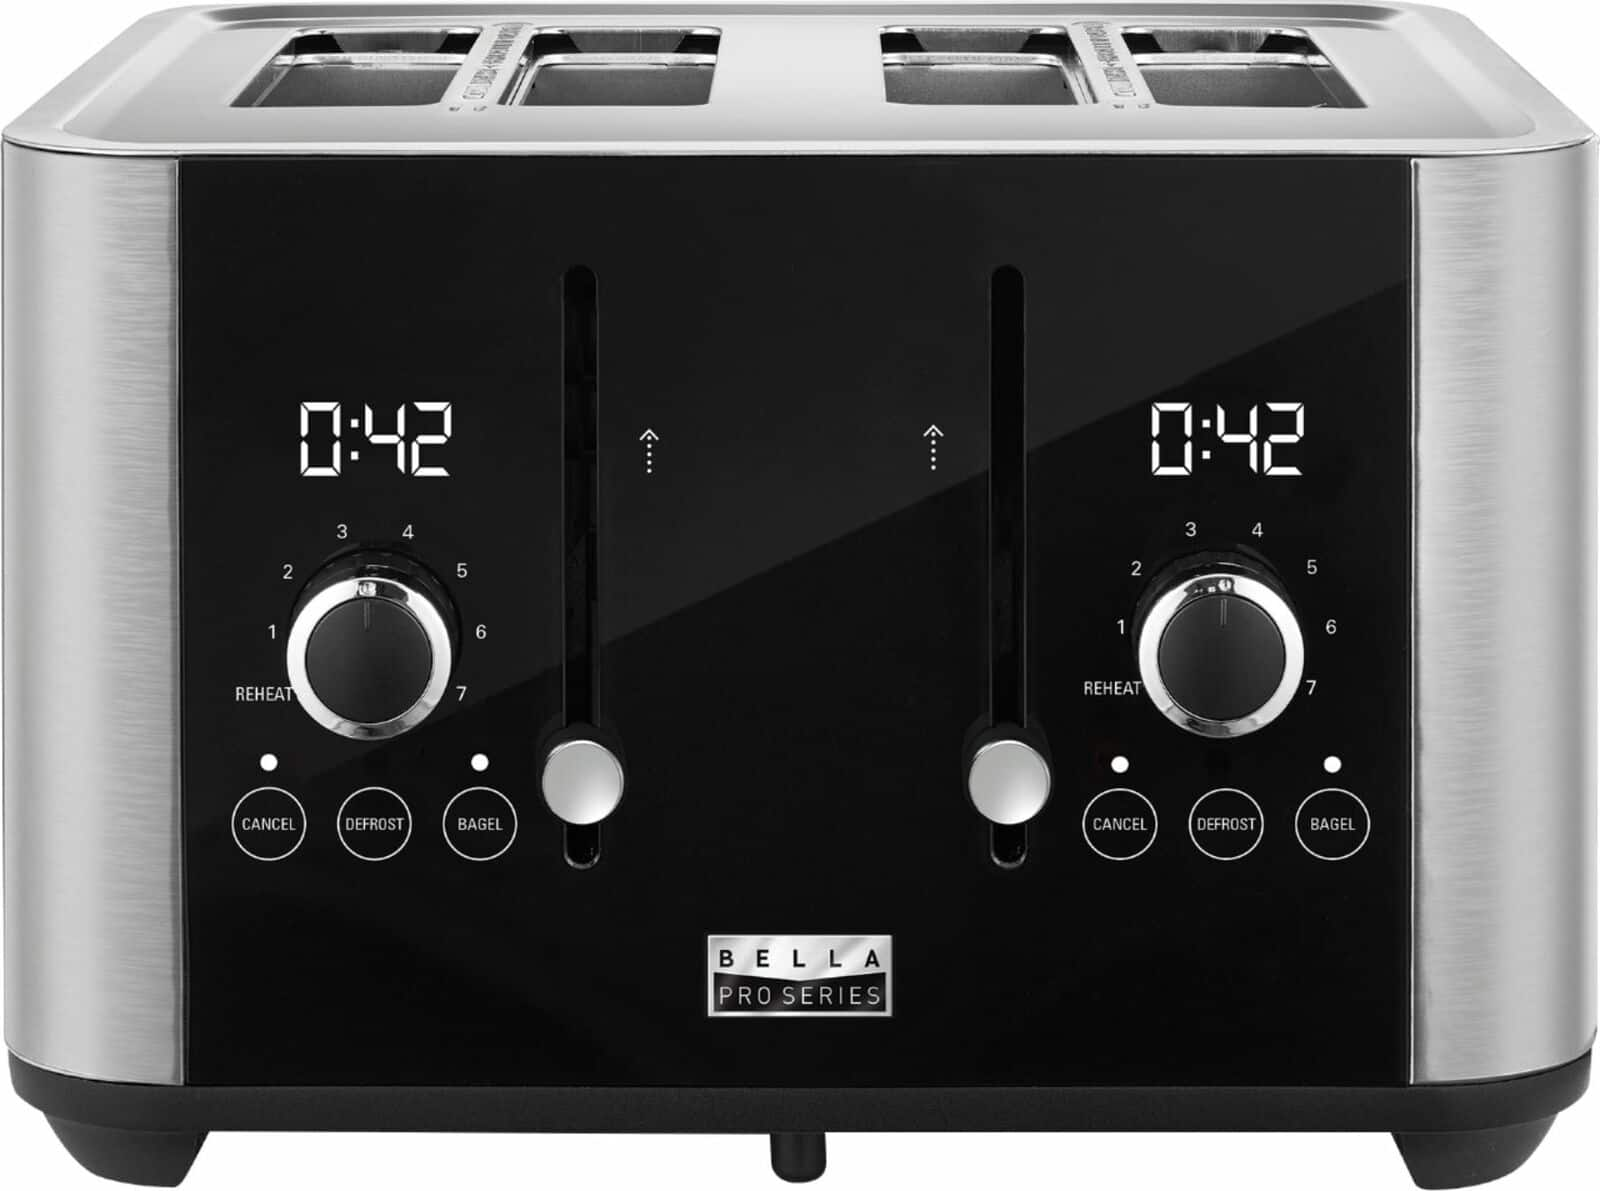 4-Slice Bella Pro Series Extra Wide Slot Digital Touchscreen Toaster $40 + Free Shipping or store pickup at Best Buy